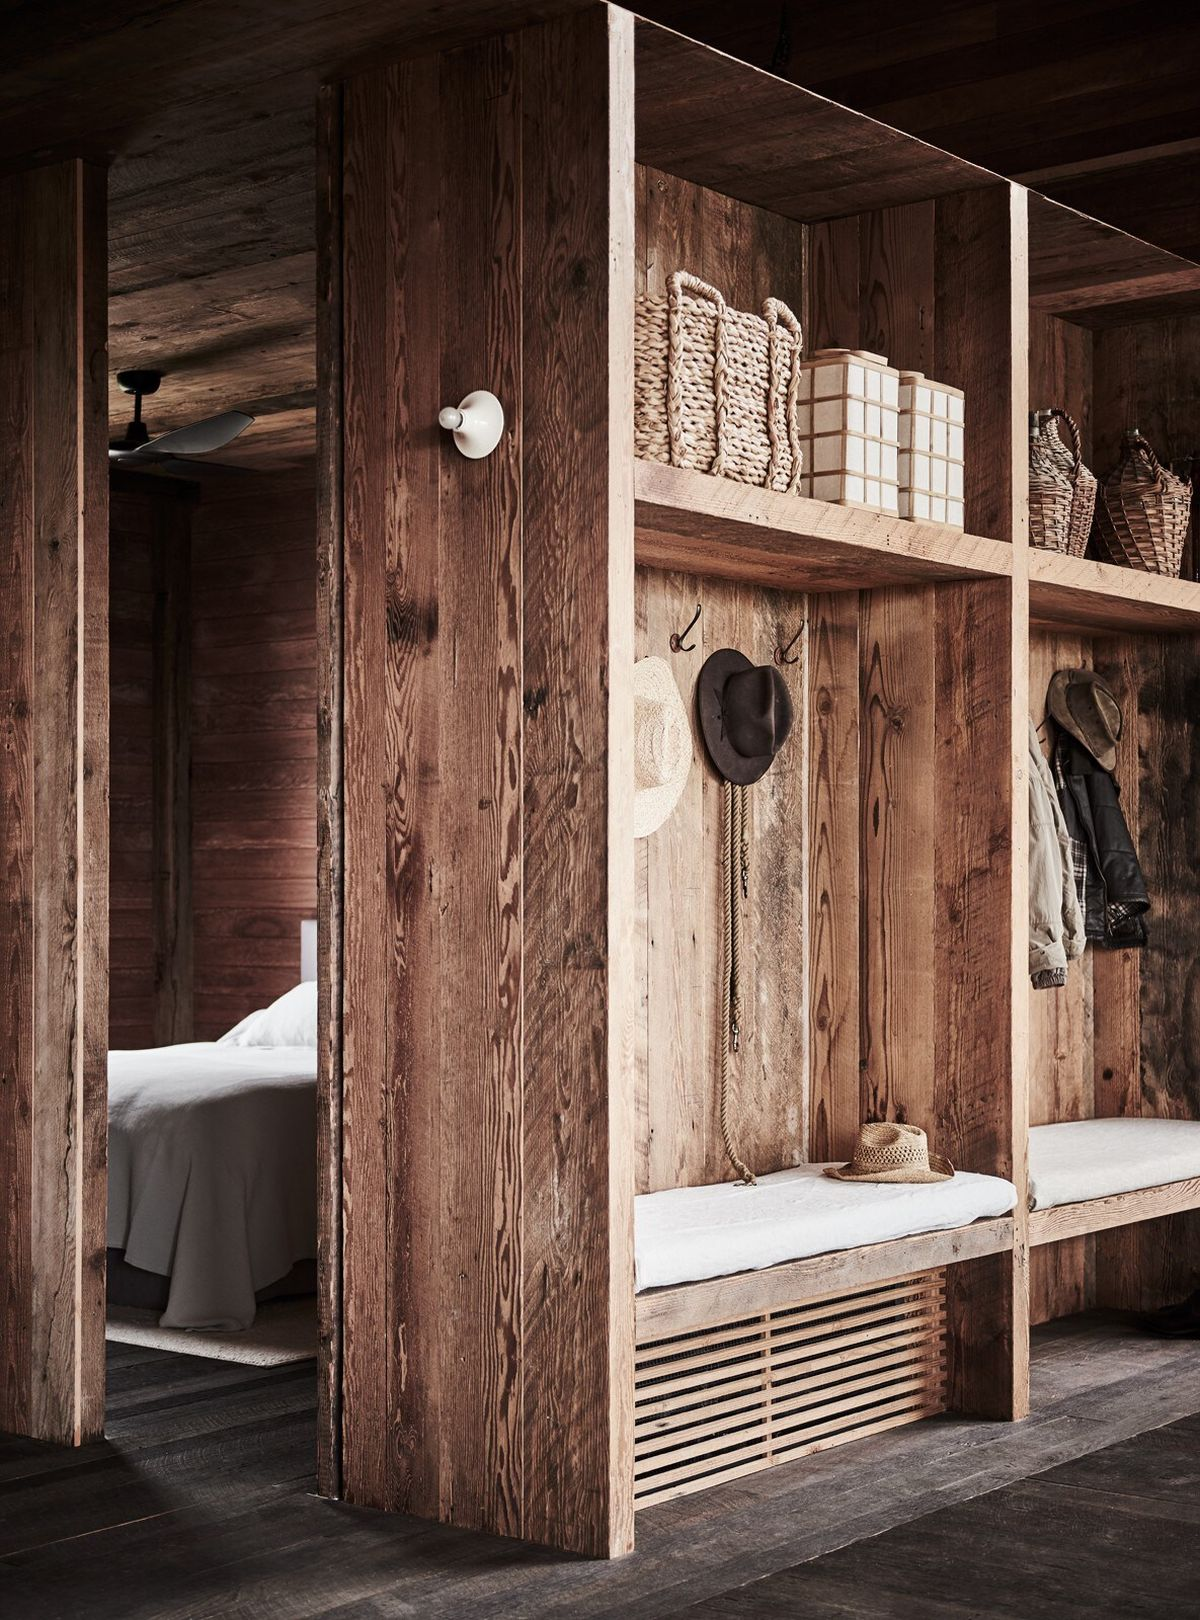 The entryway is marked by a set of small benches and a set of shelves and storage hooks built into one of the walls